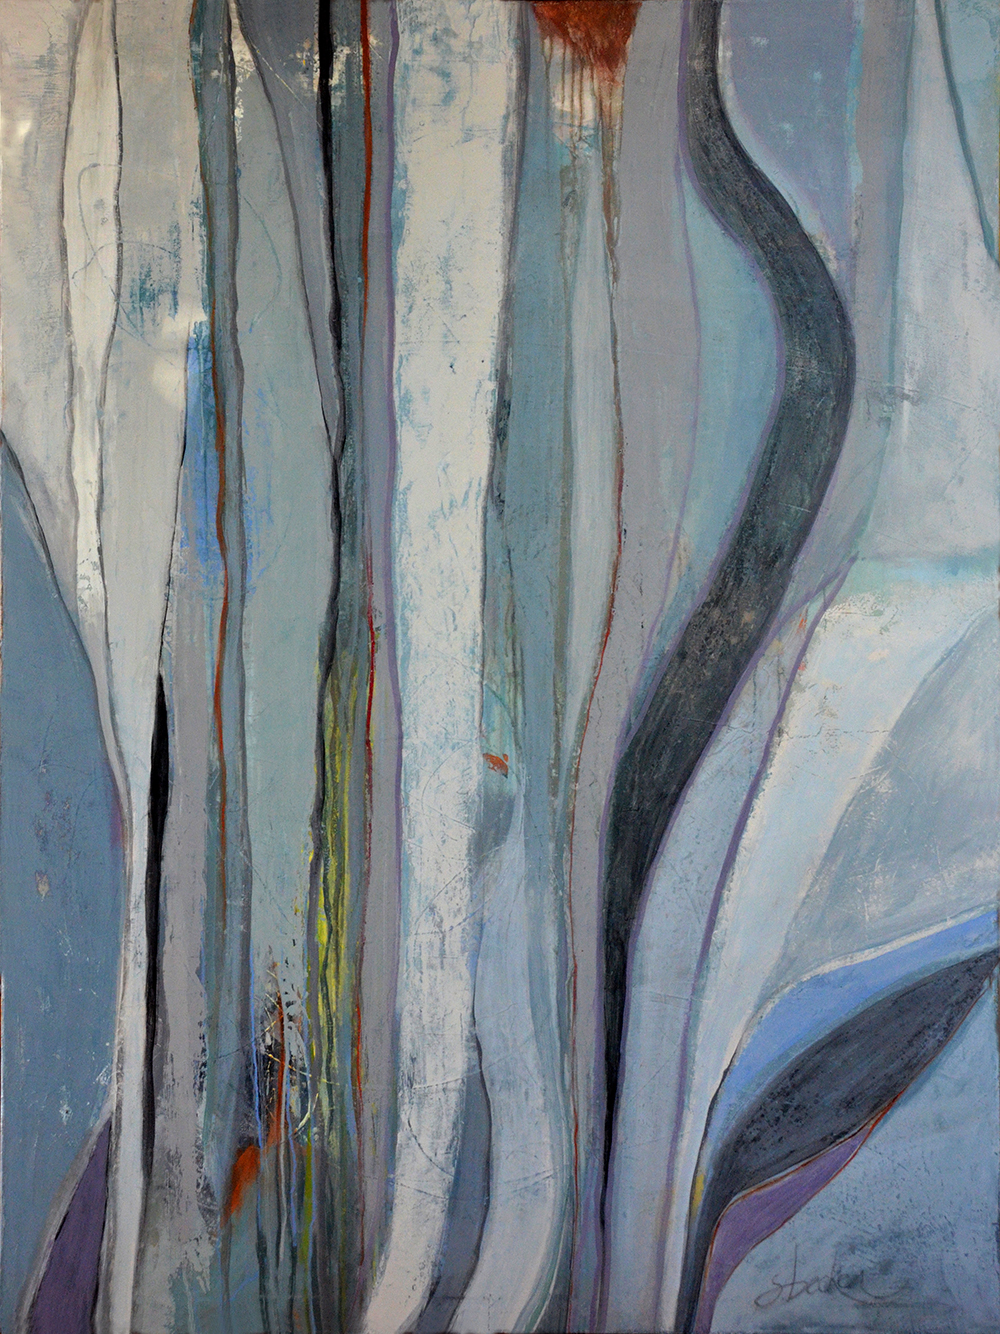 2018 PAINTING_april abstracts_48x30_voyagePHX.jpg